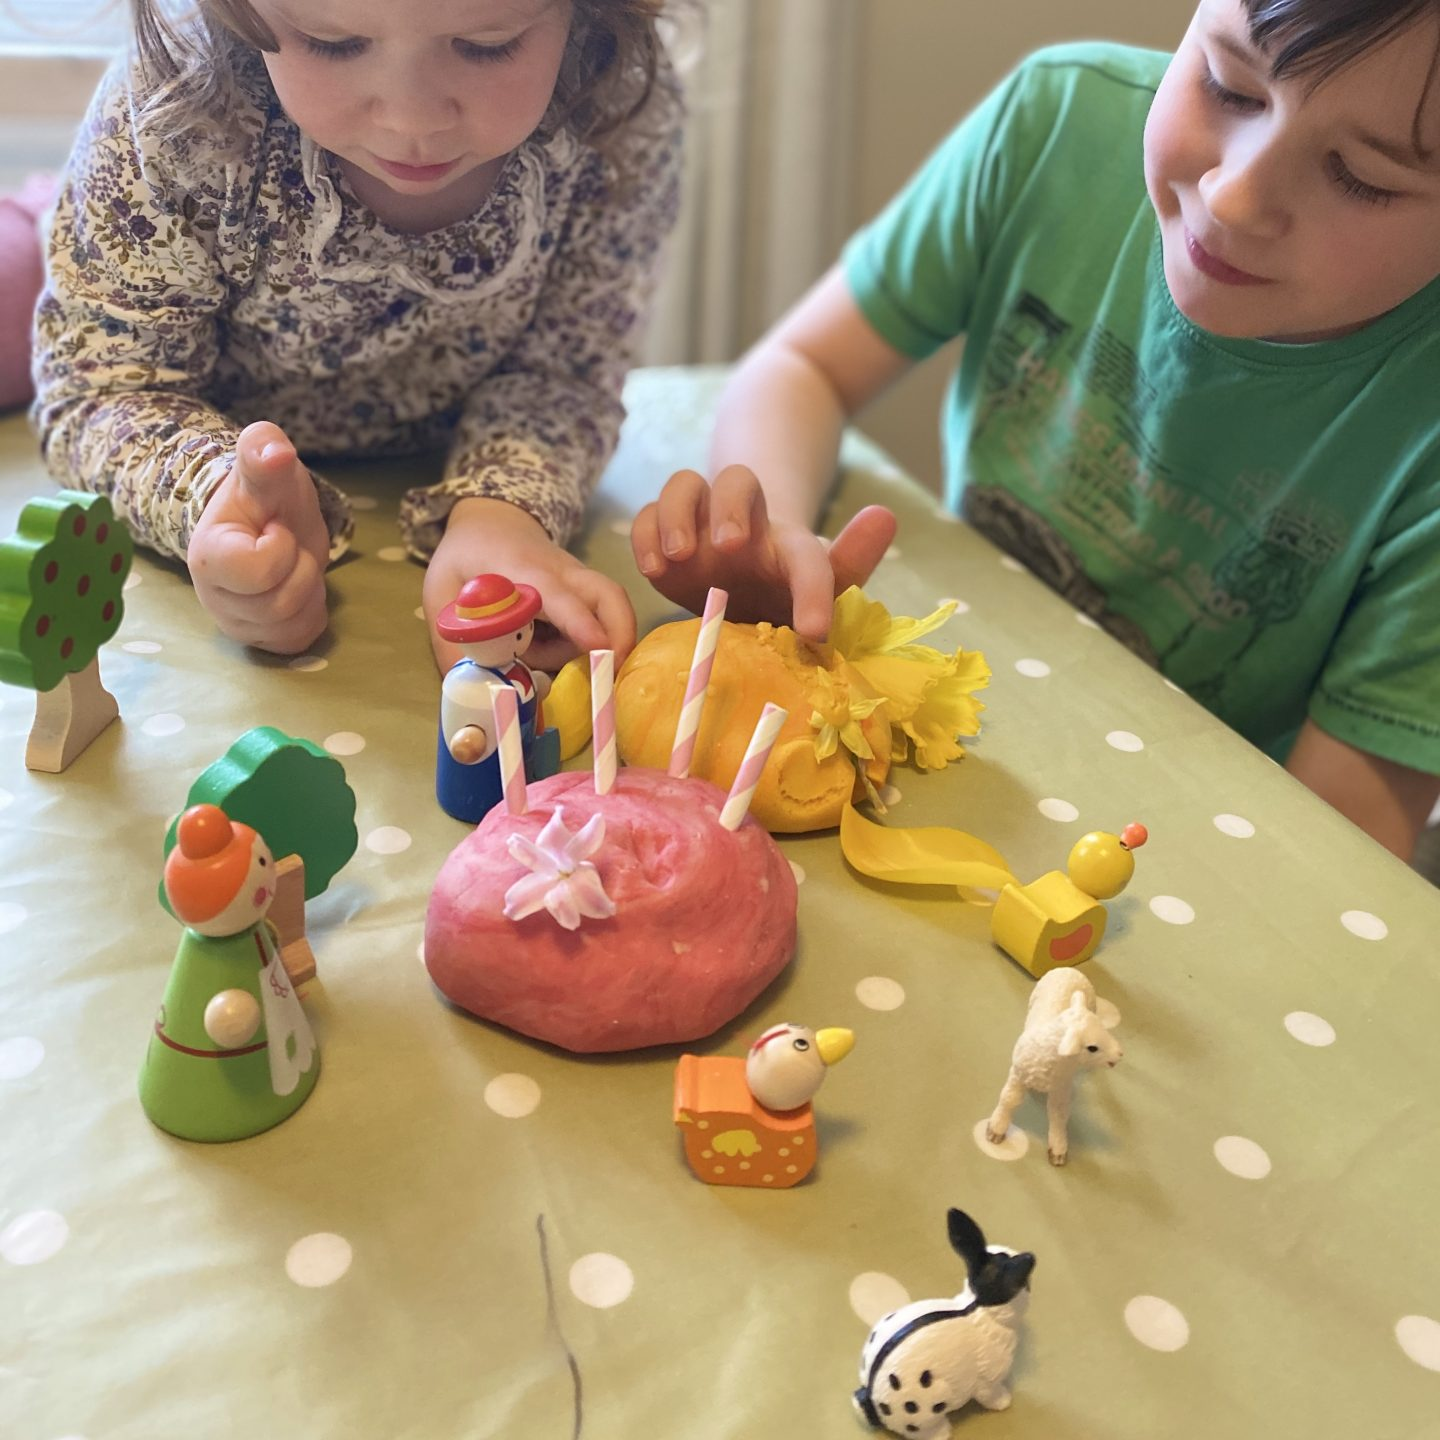 Playdough and farm animals with two children playing